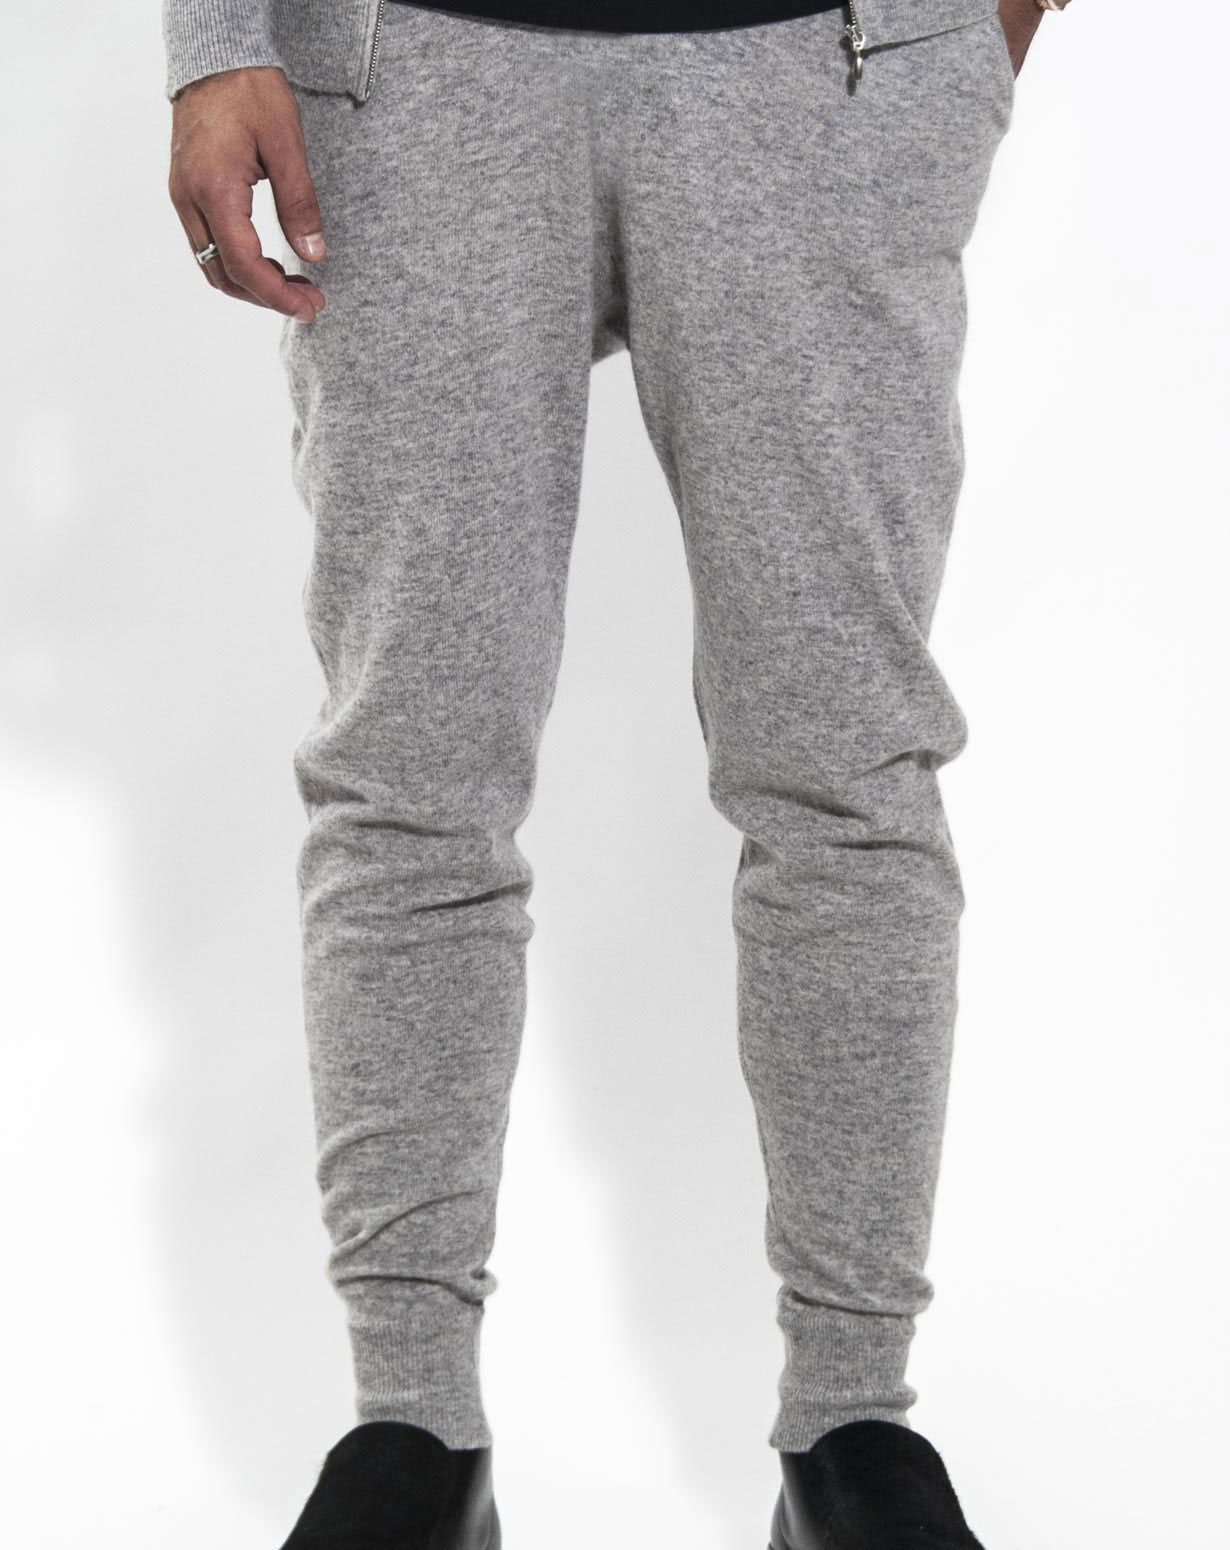 sweat pants menu0027s pure cashmere sweatpants fbtrdik